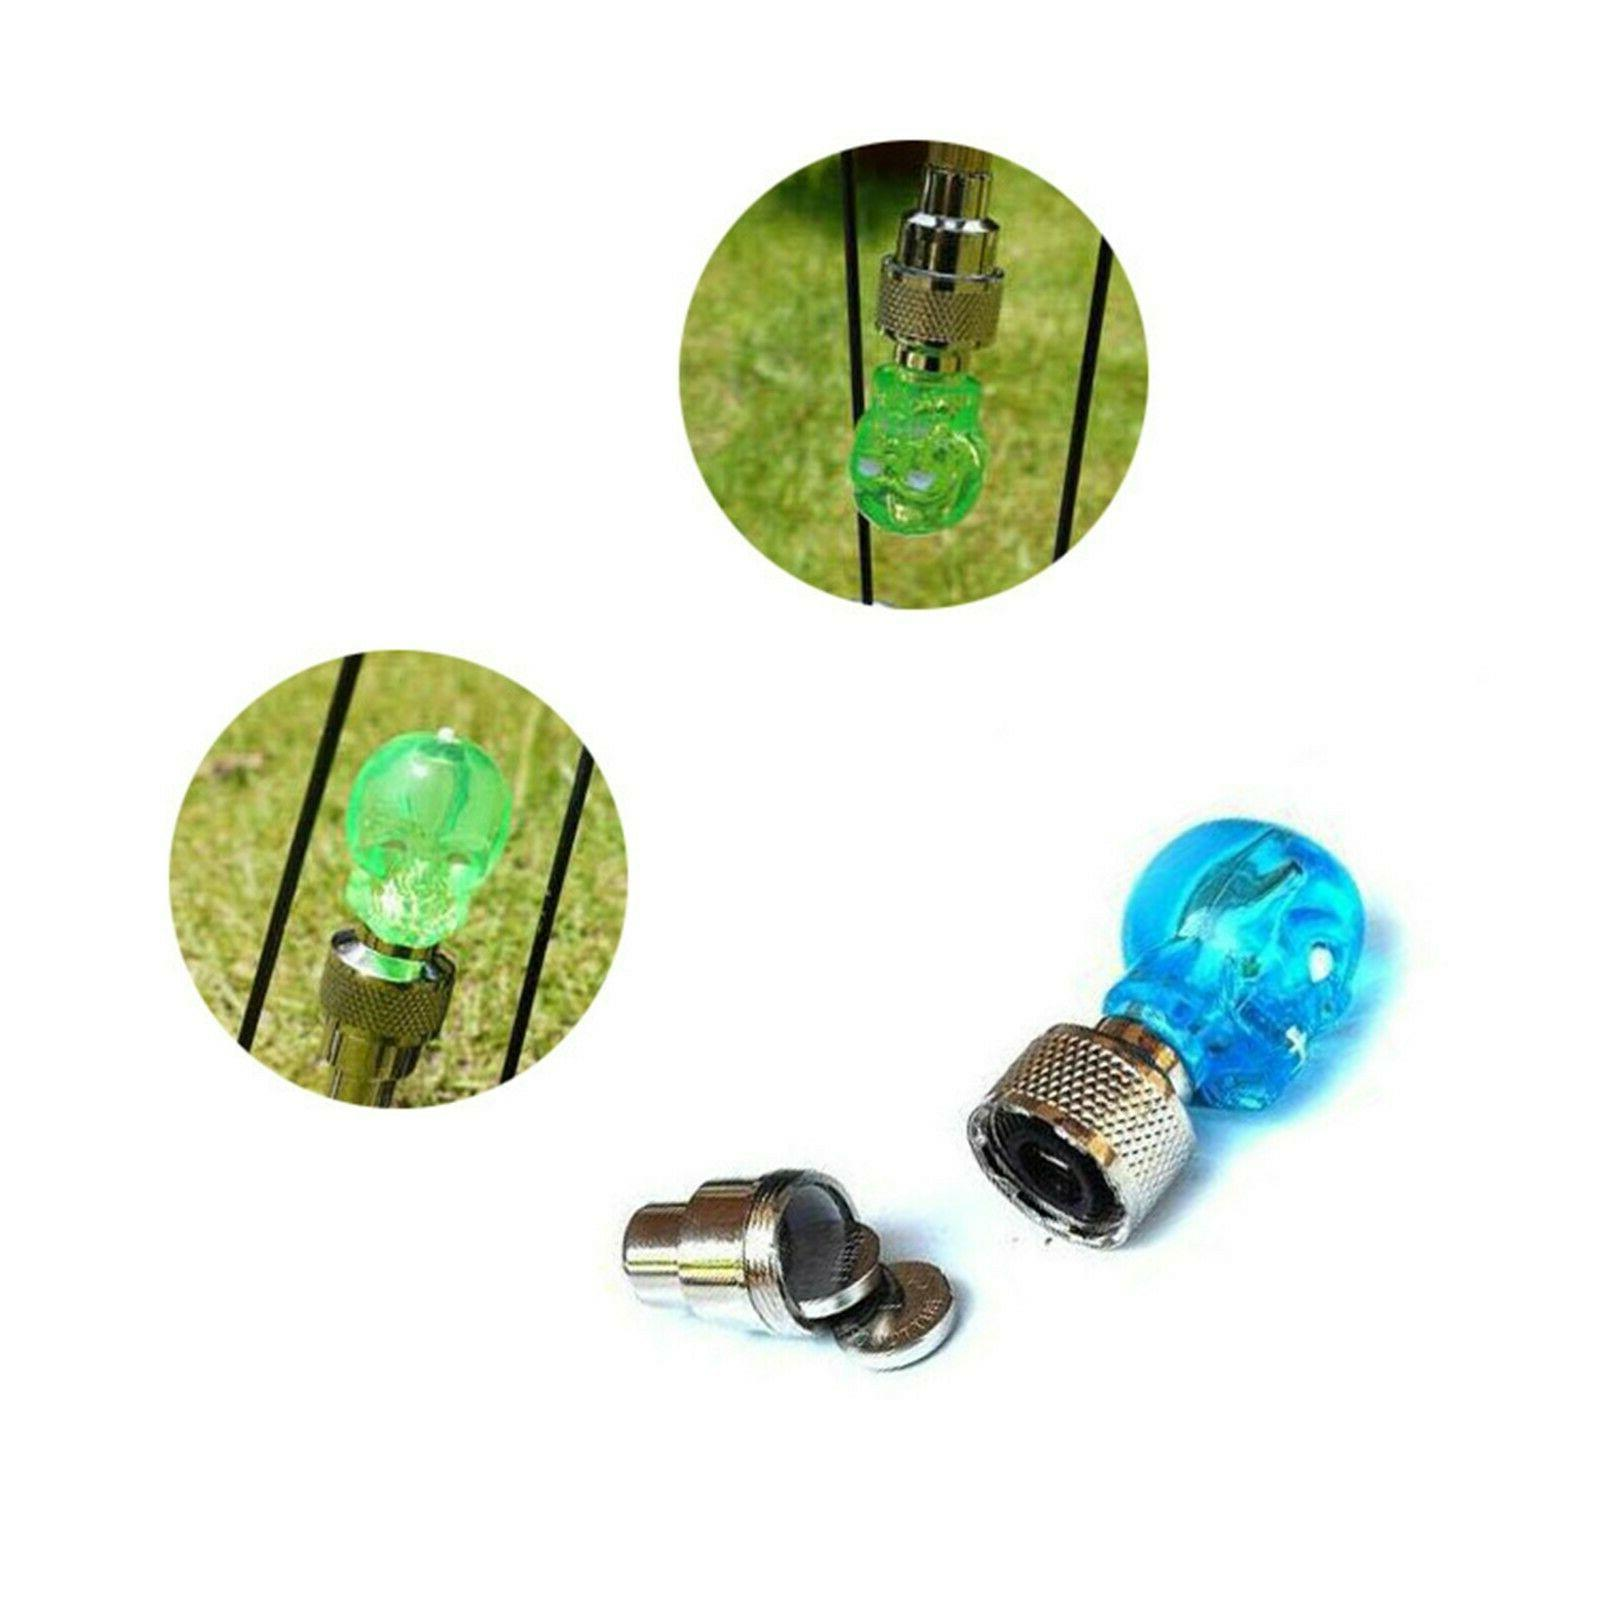 2/4 LED CAP for Bike Bicycle Tire lamp